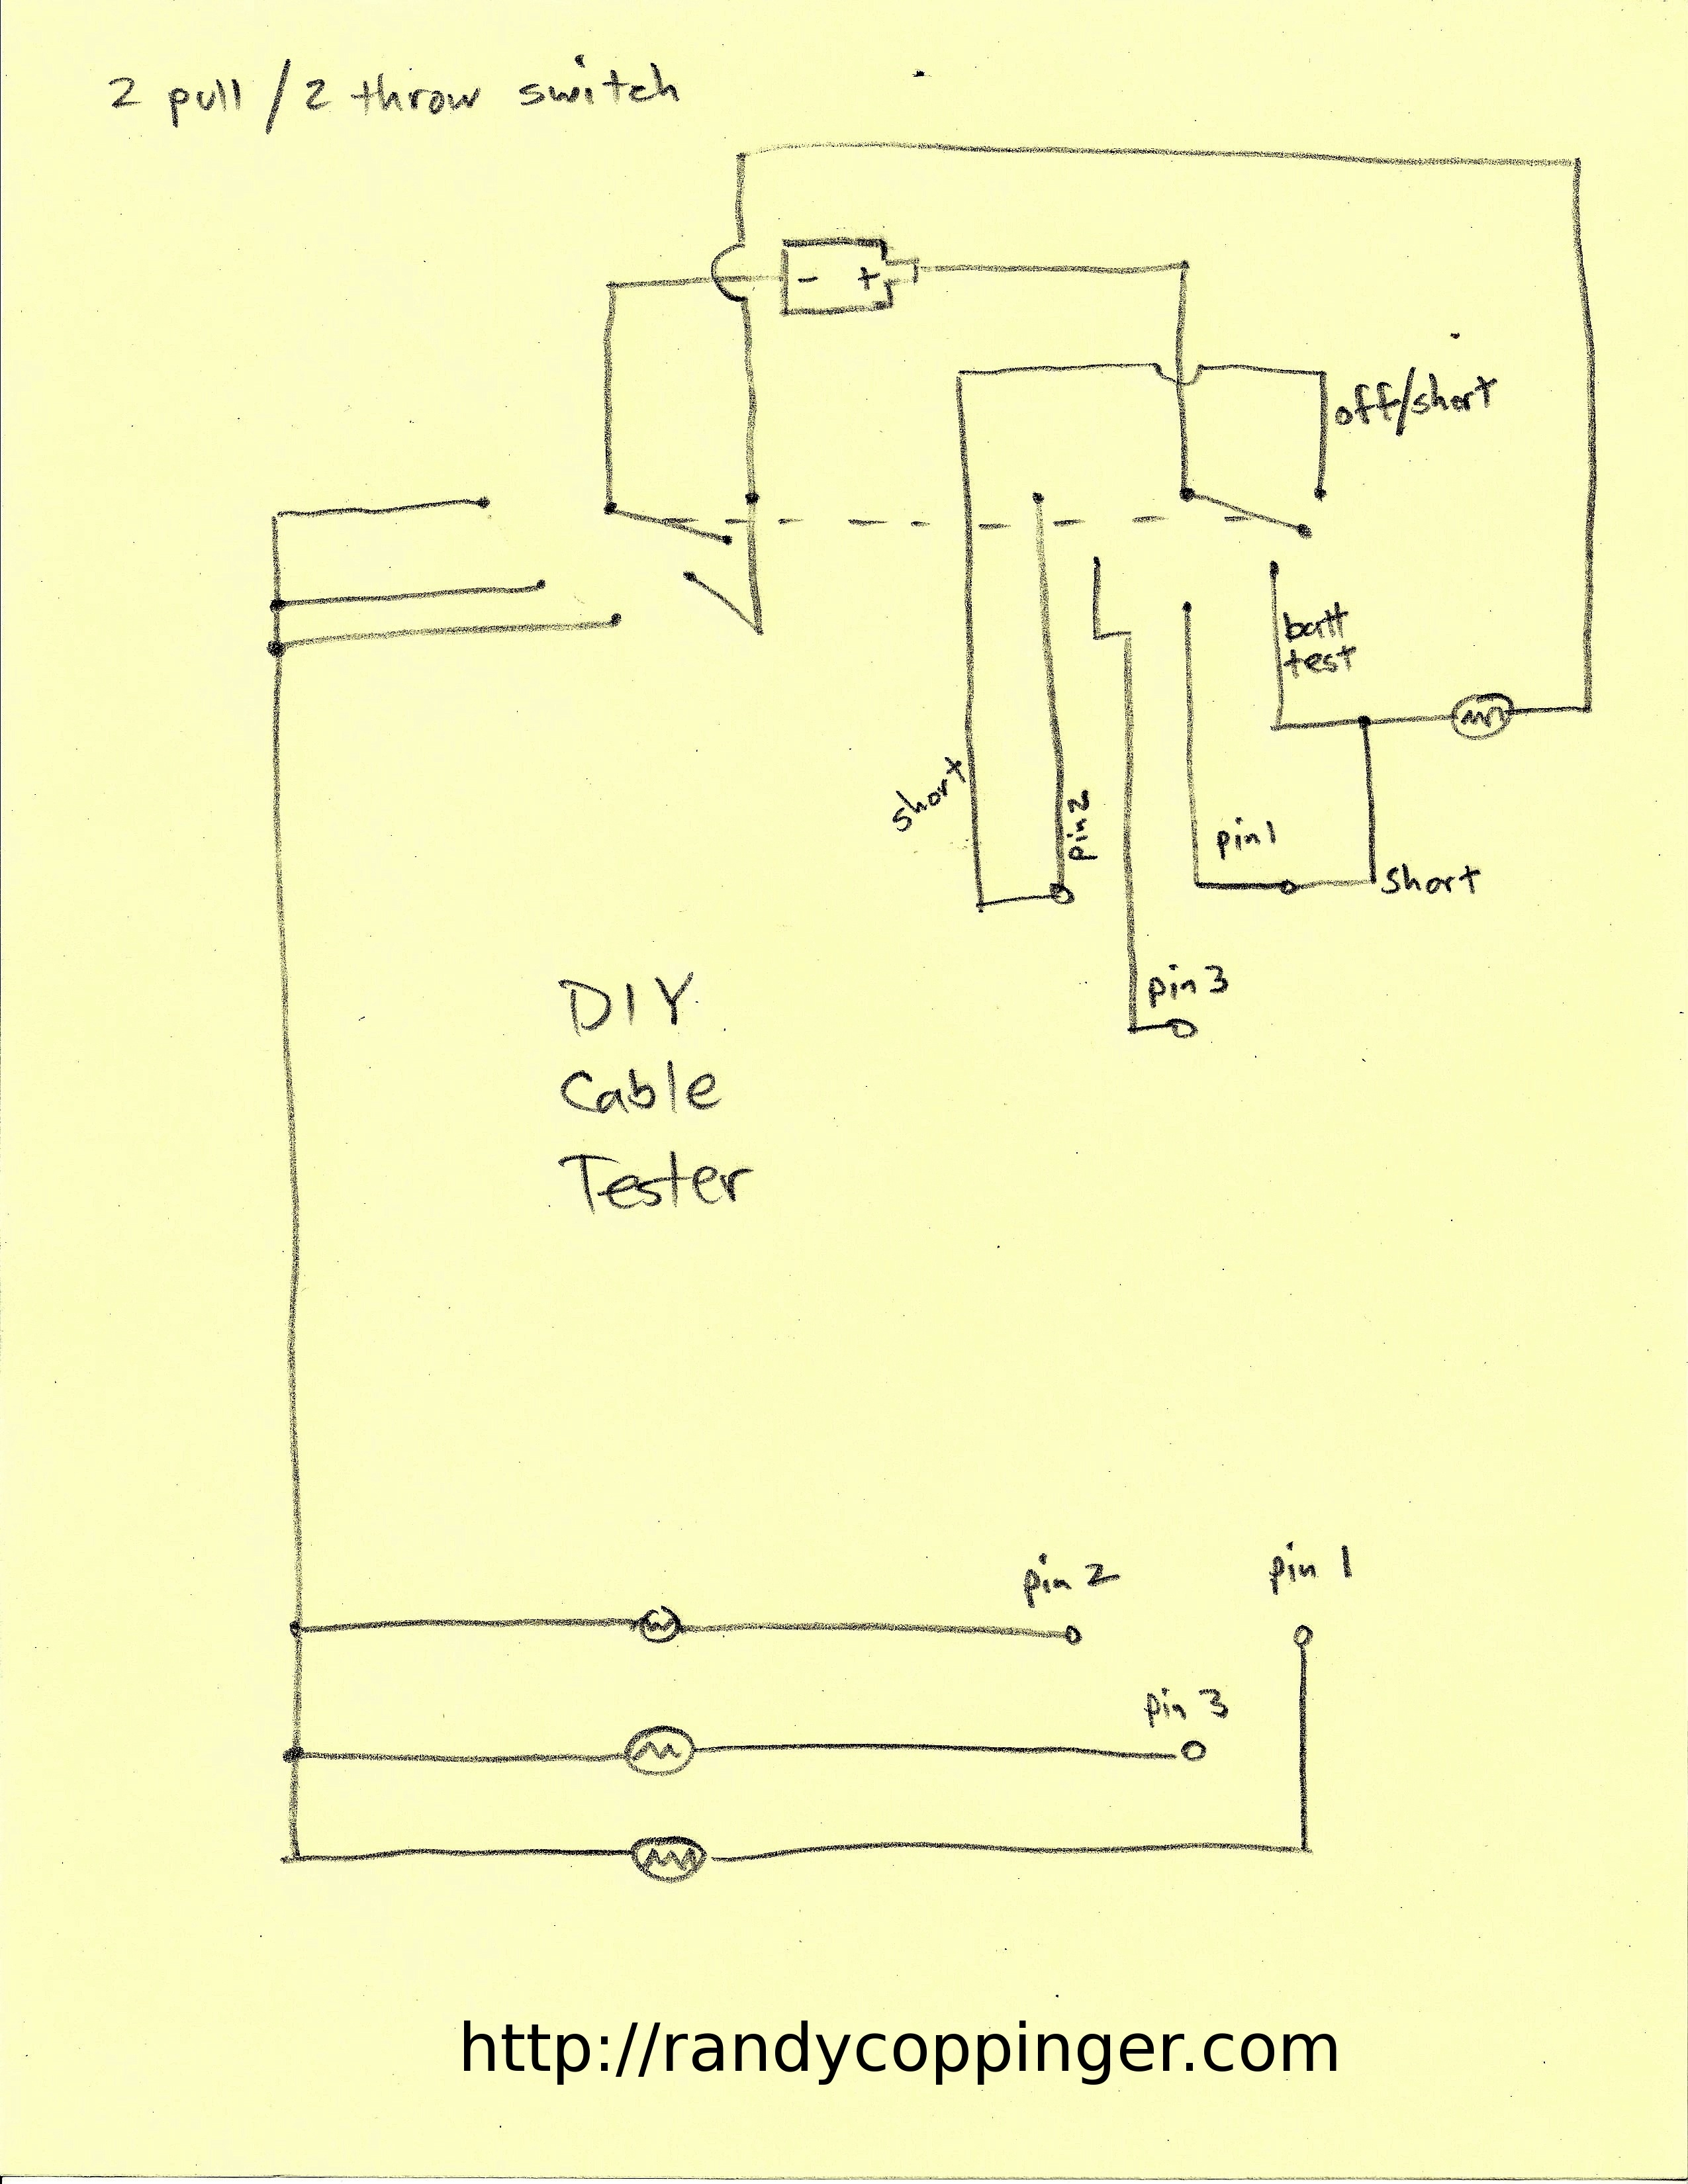 diy house wiring diagrams for trailer plugs audio cable tester schematics get free image about